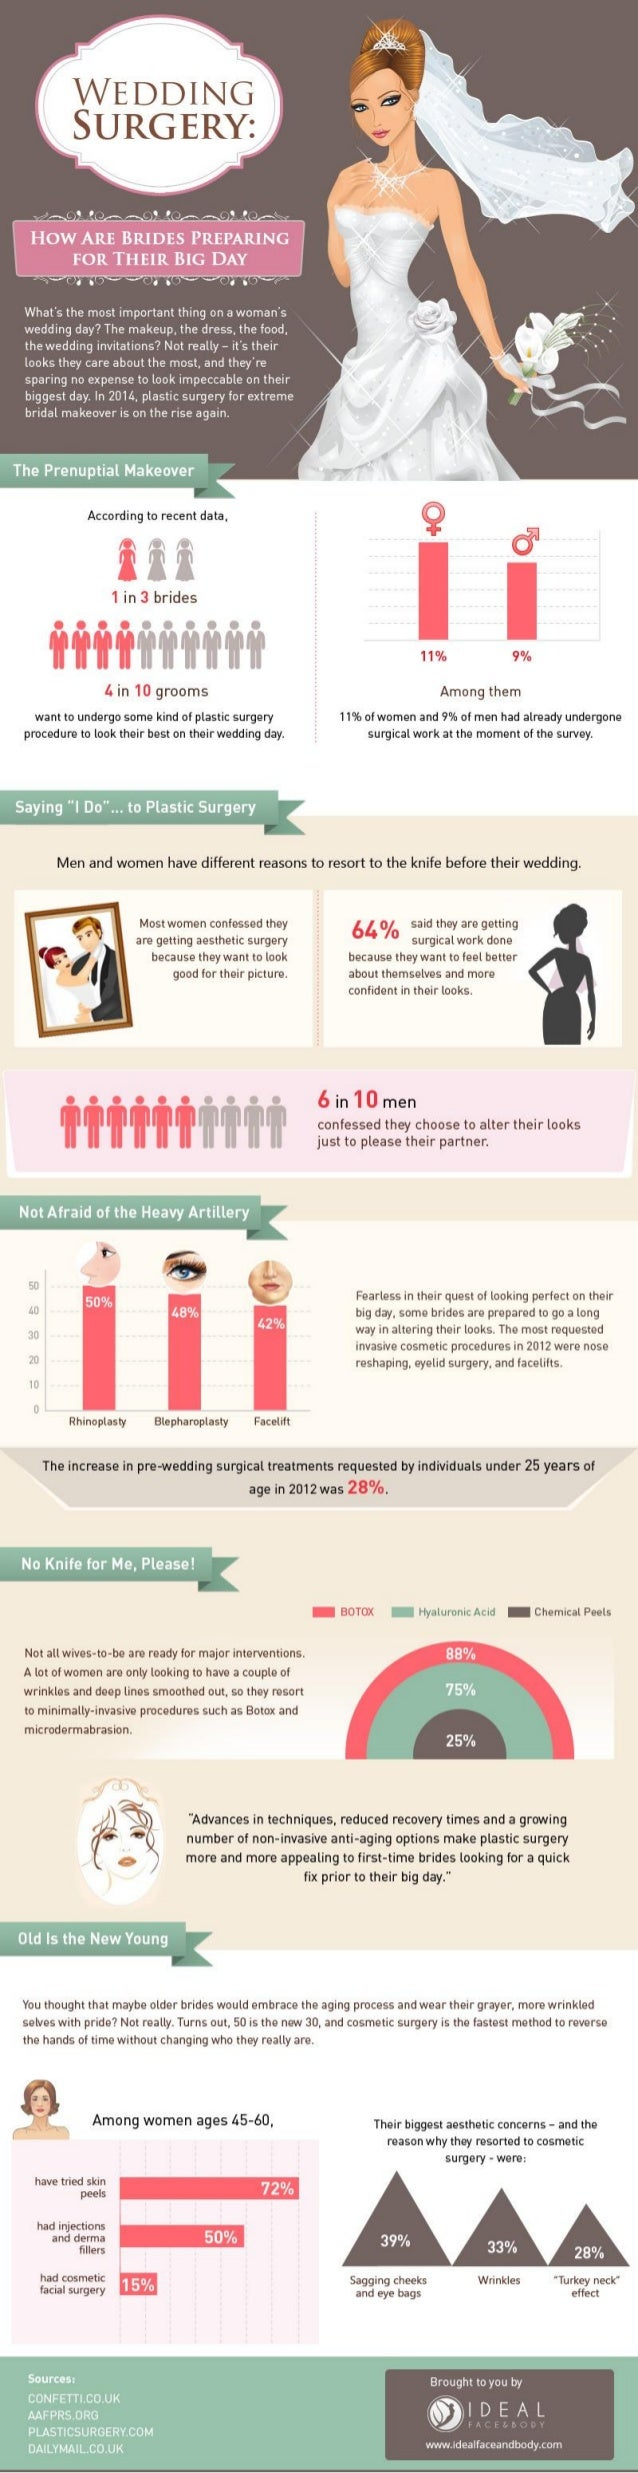 Wedding Surgery: How Are Brides Preparing for Their Big Day